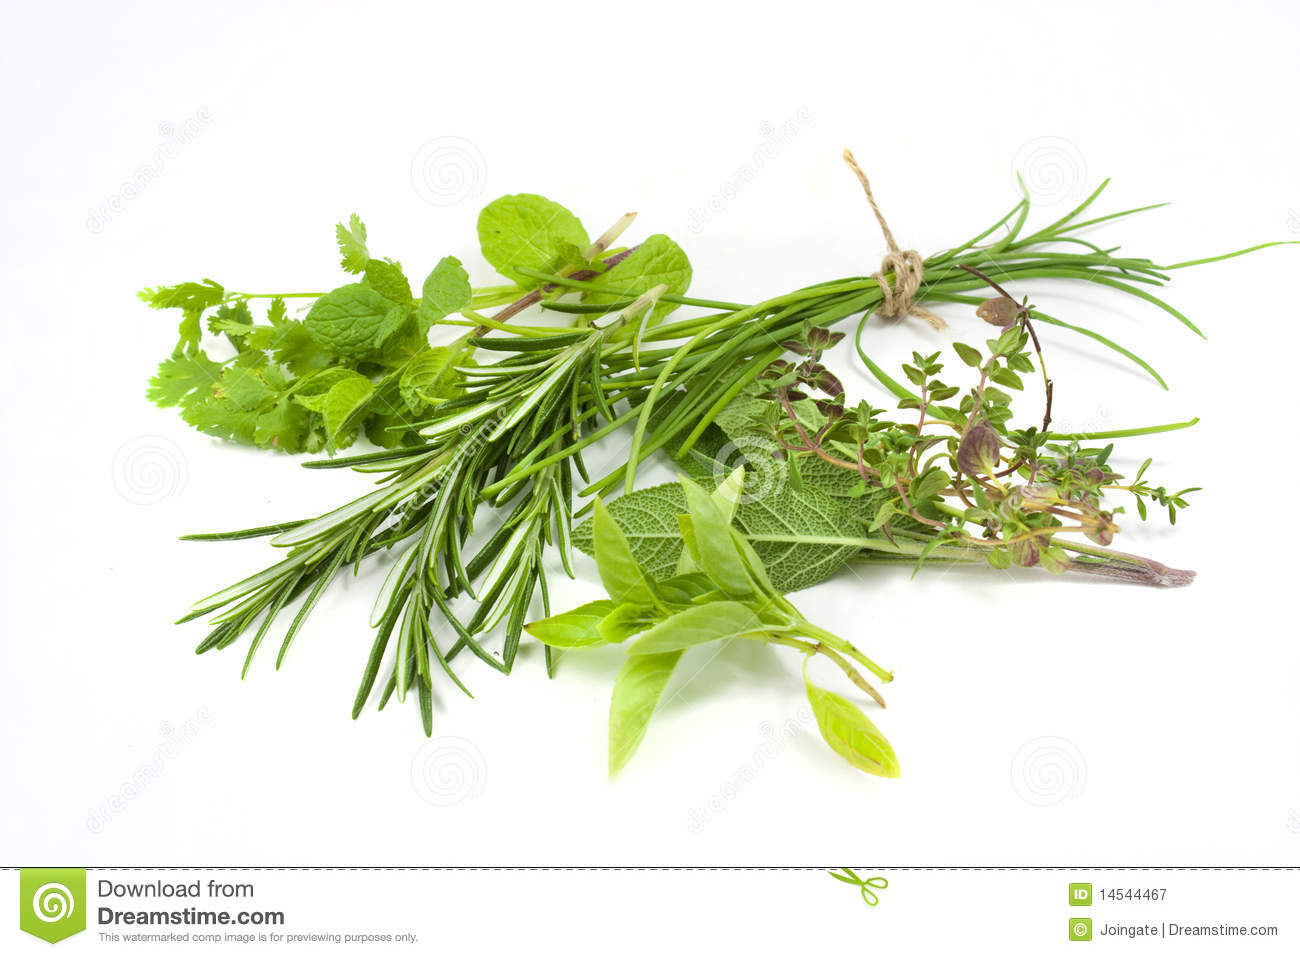 Different herbs royalty free stock image image 16265346 - Mixed Fresh Herbs Royalty Free Stock Photography